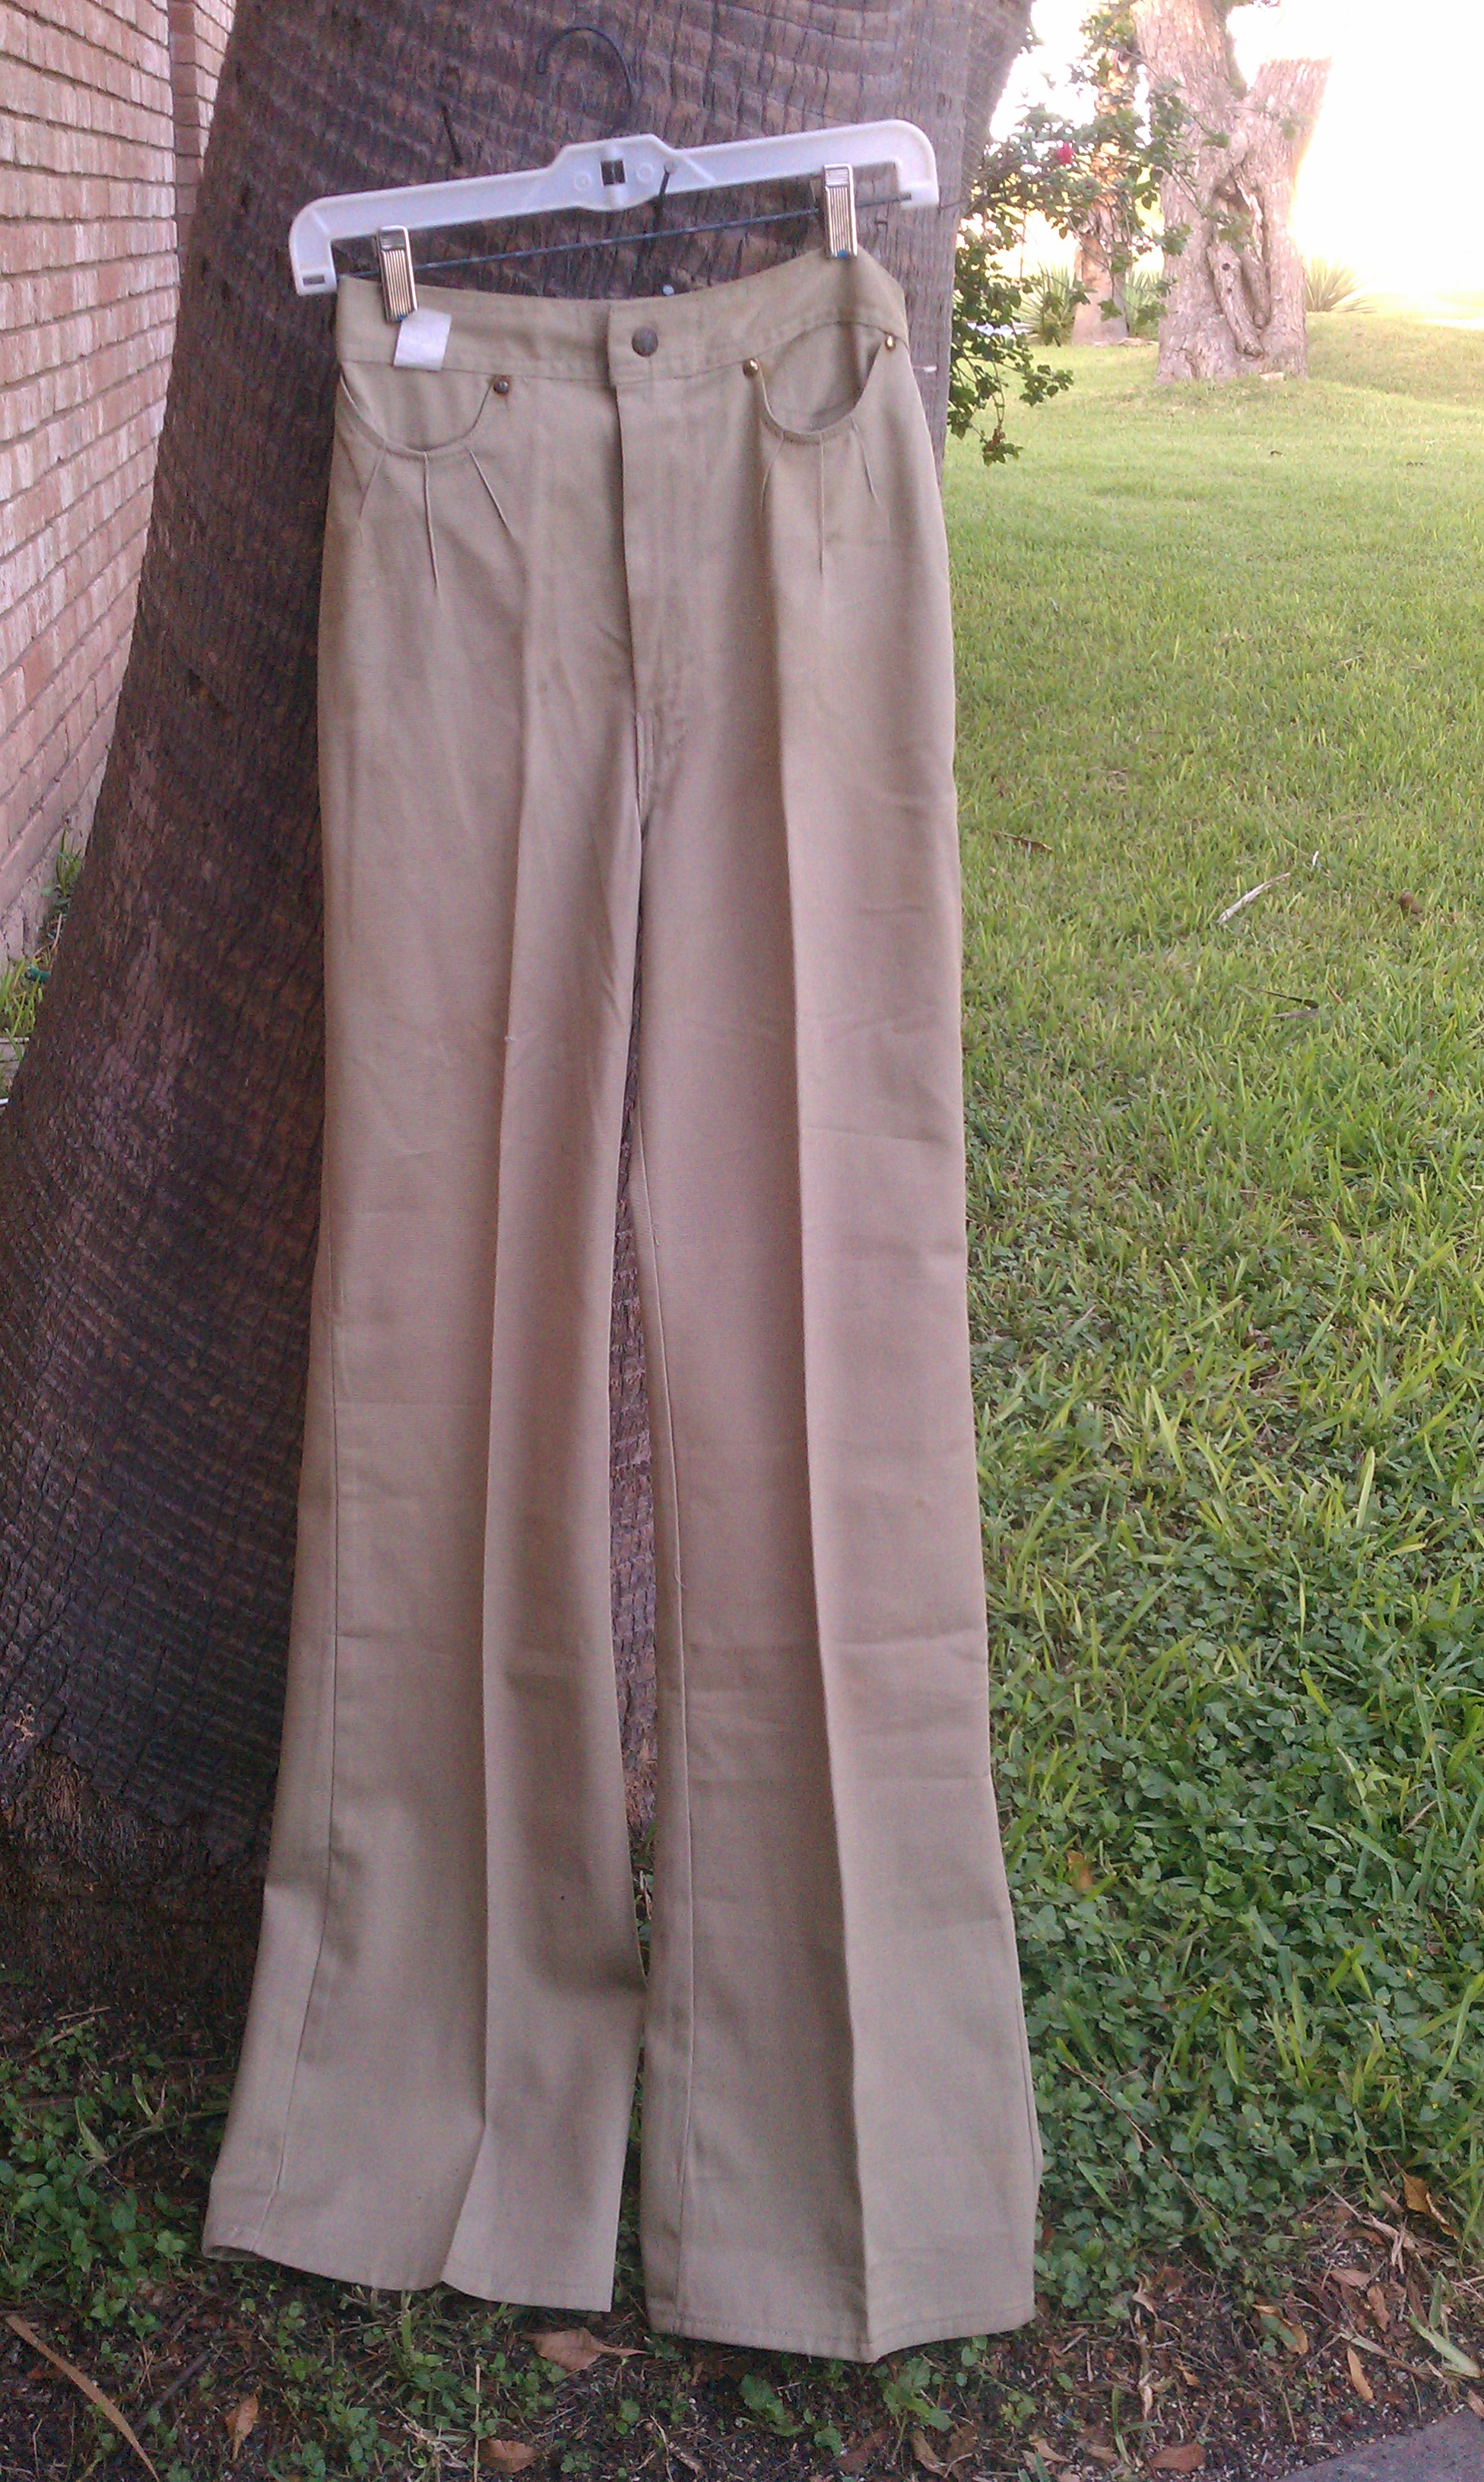 Rumble Seat Khaki For Lady S 70s Bell Bottom Pants